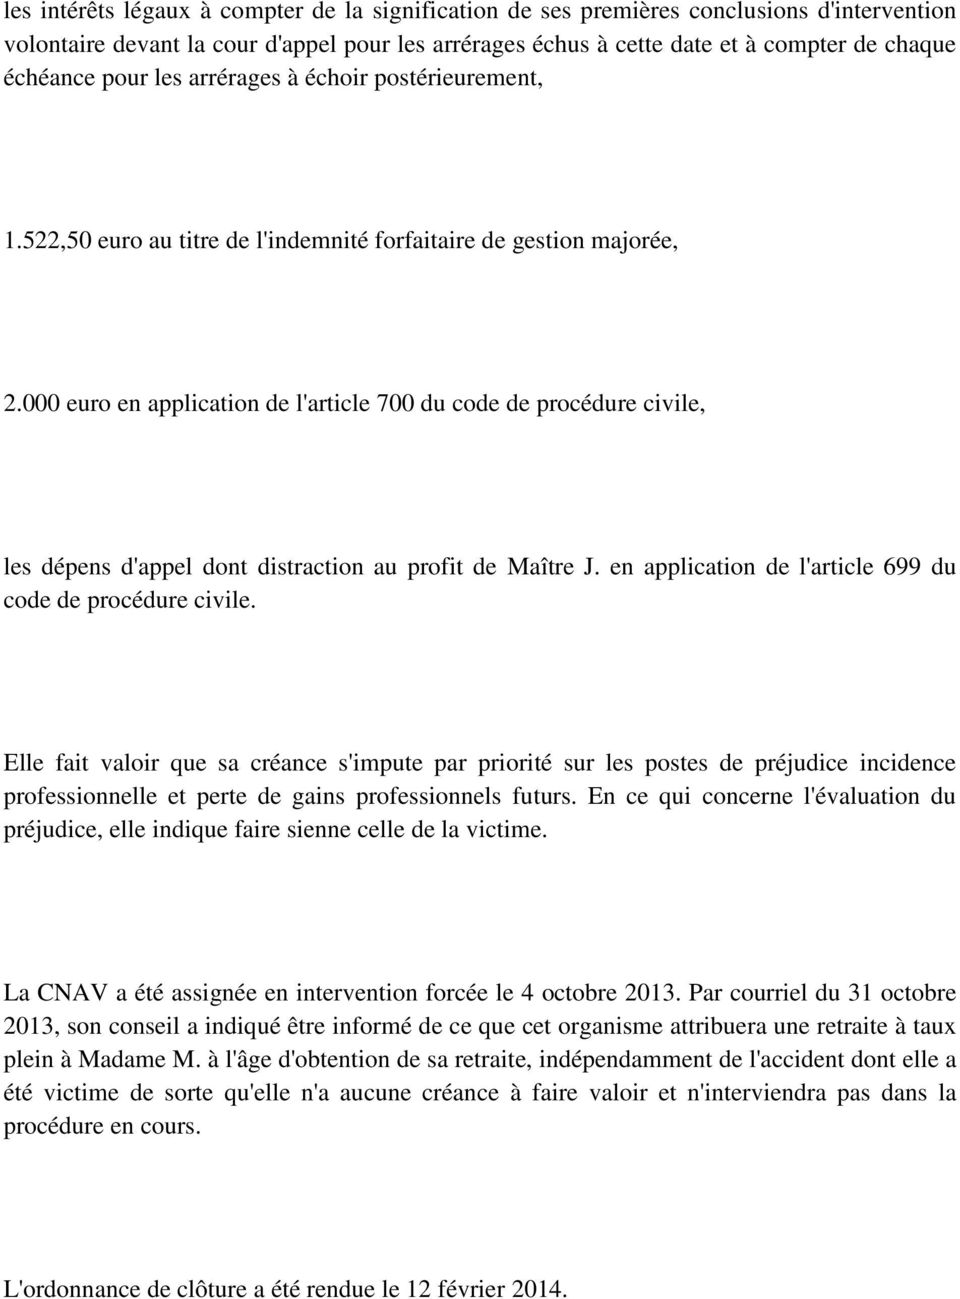 000 euro en application de l'article 700 du code de procédure civile, les dépens d'appel dont distraction au profit de Maître J. en application de l'article 699 du code de procédure civile.